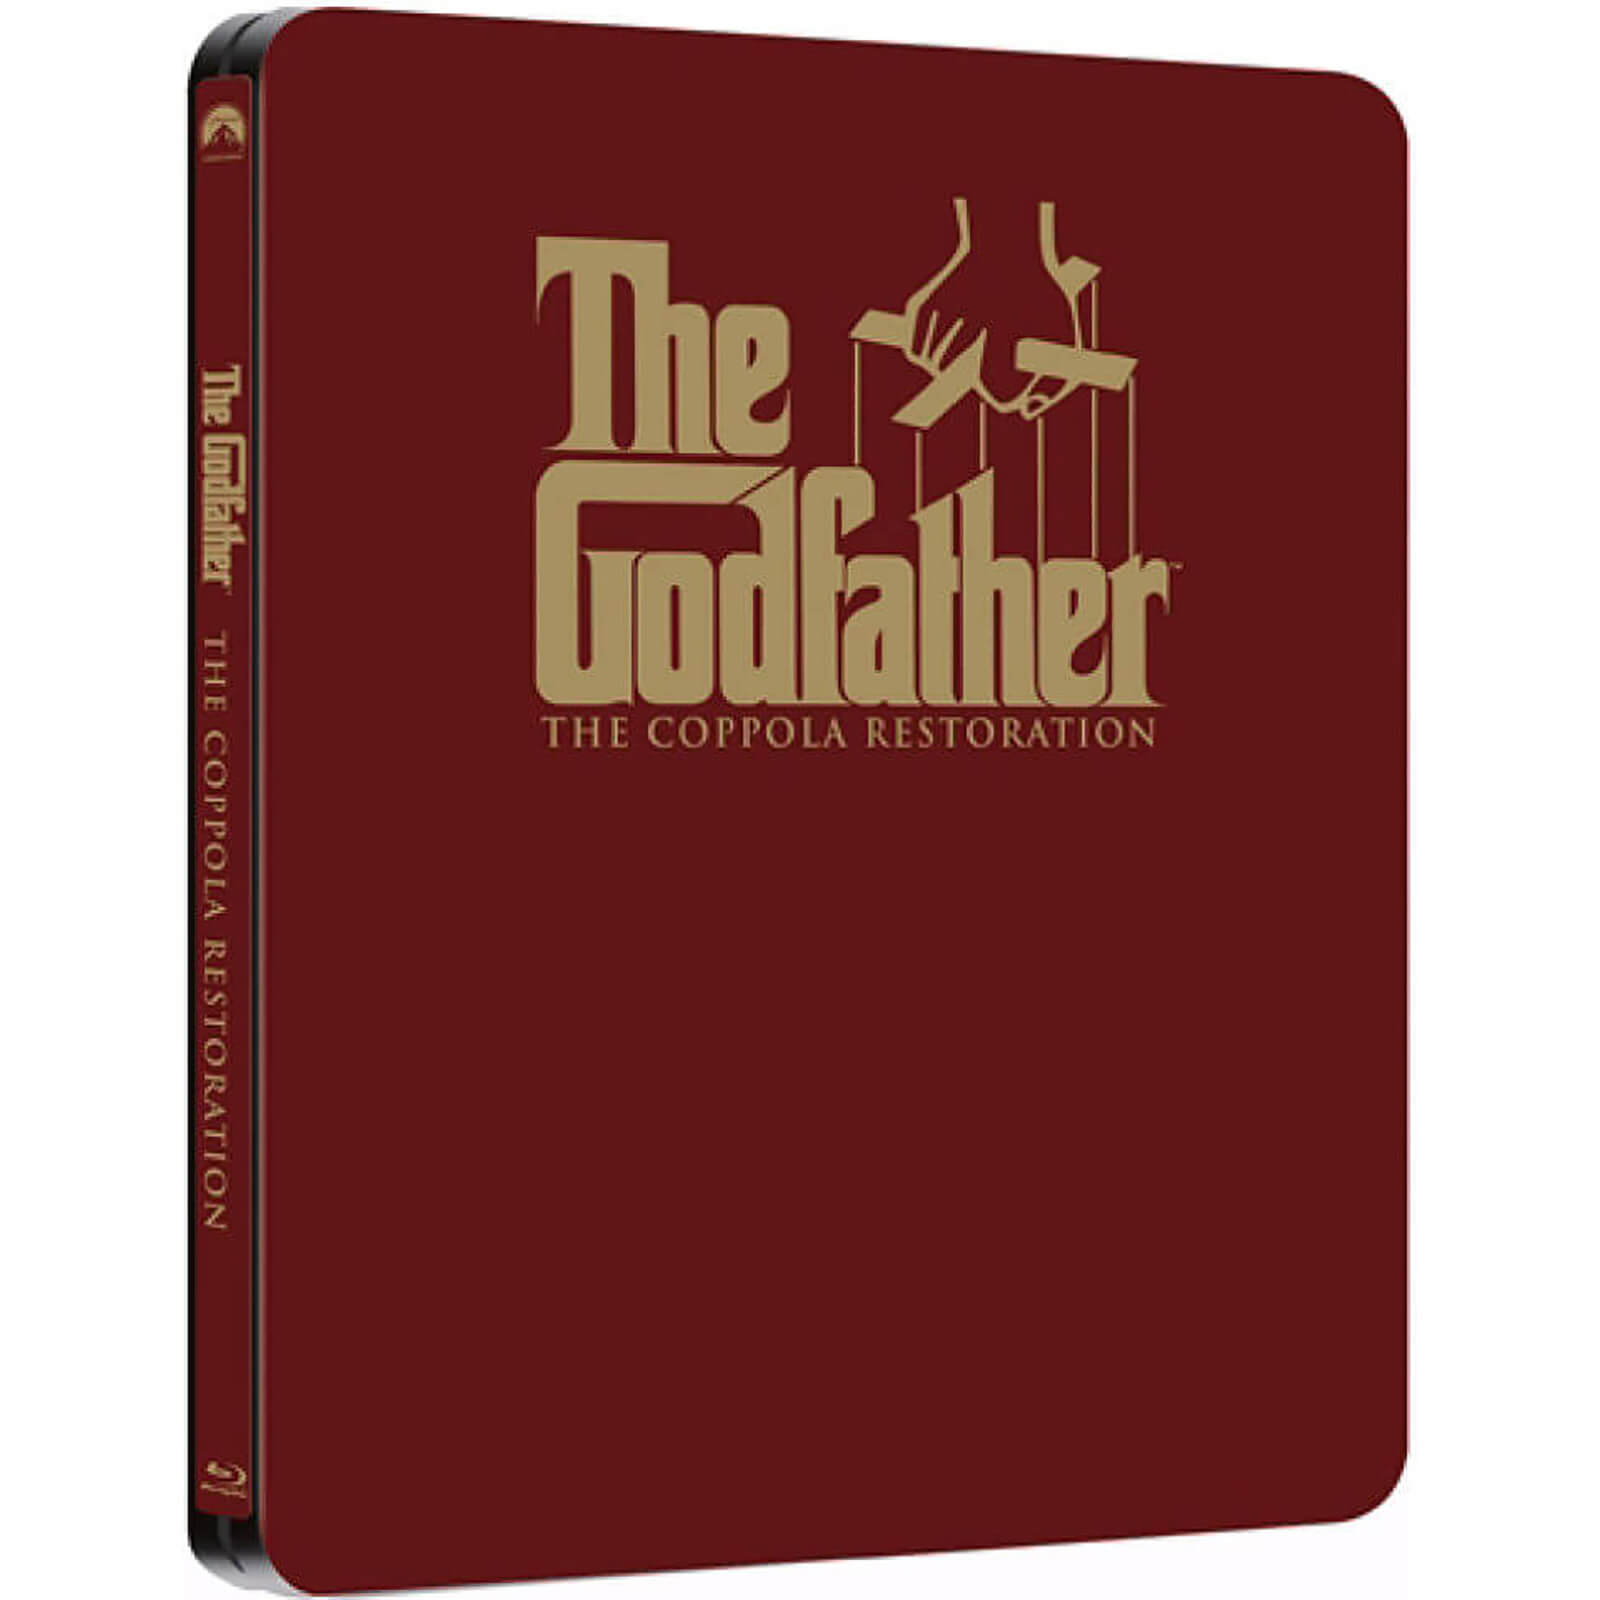 The Godfather Trilogy: The Coppola Restoration - Paramount Centenary Limited Edition Steelbook von Paramount Home Entertainment